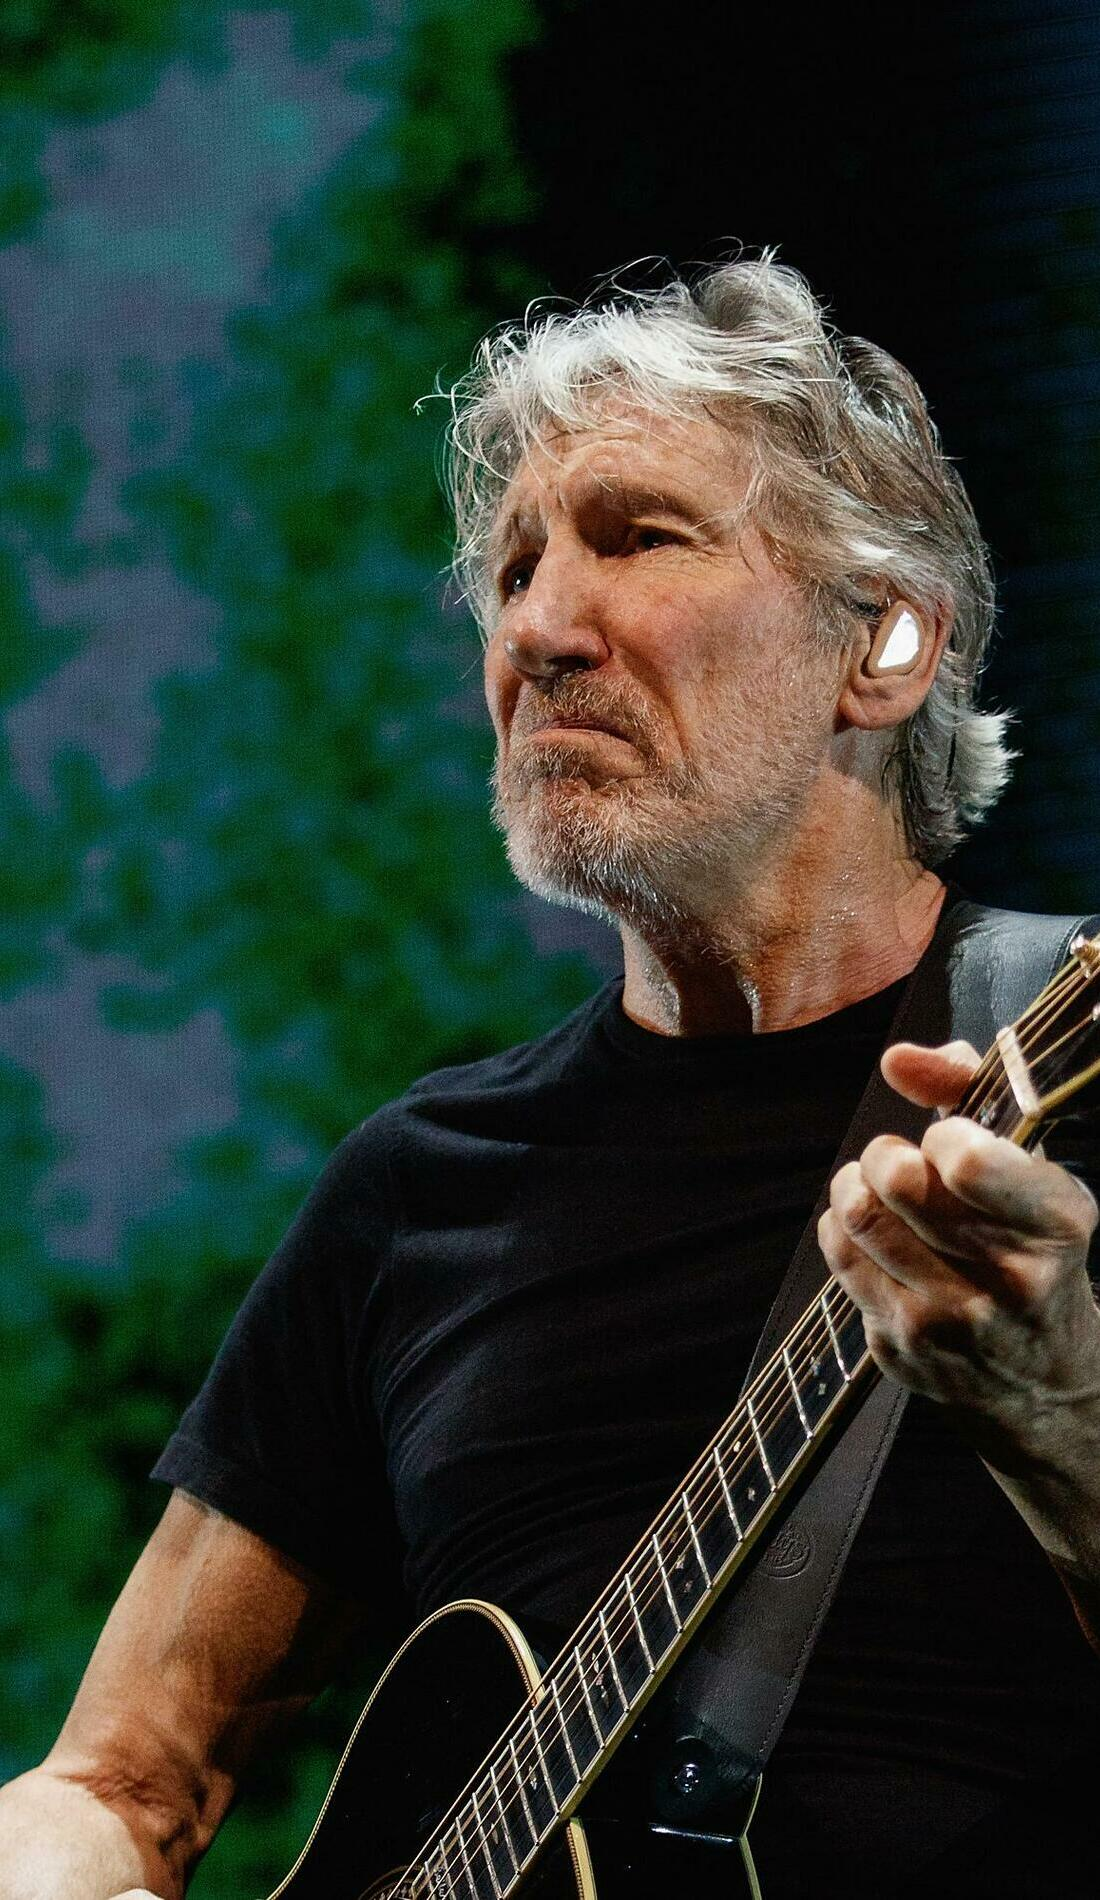 A Roger Waters live event